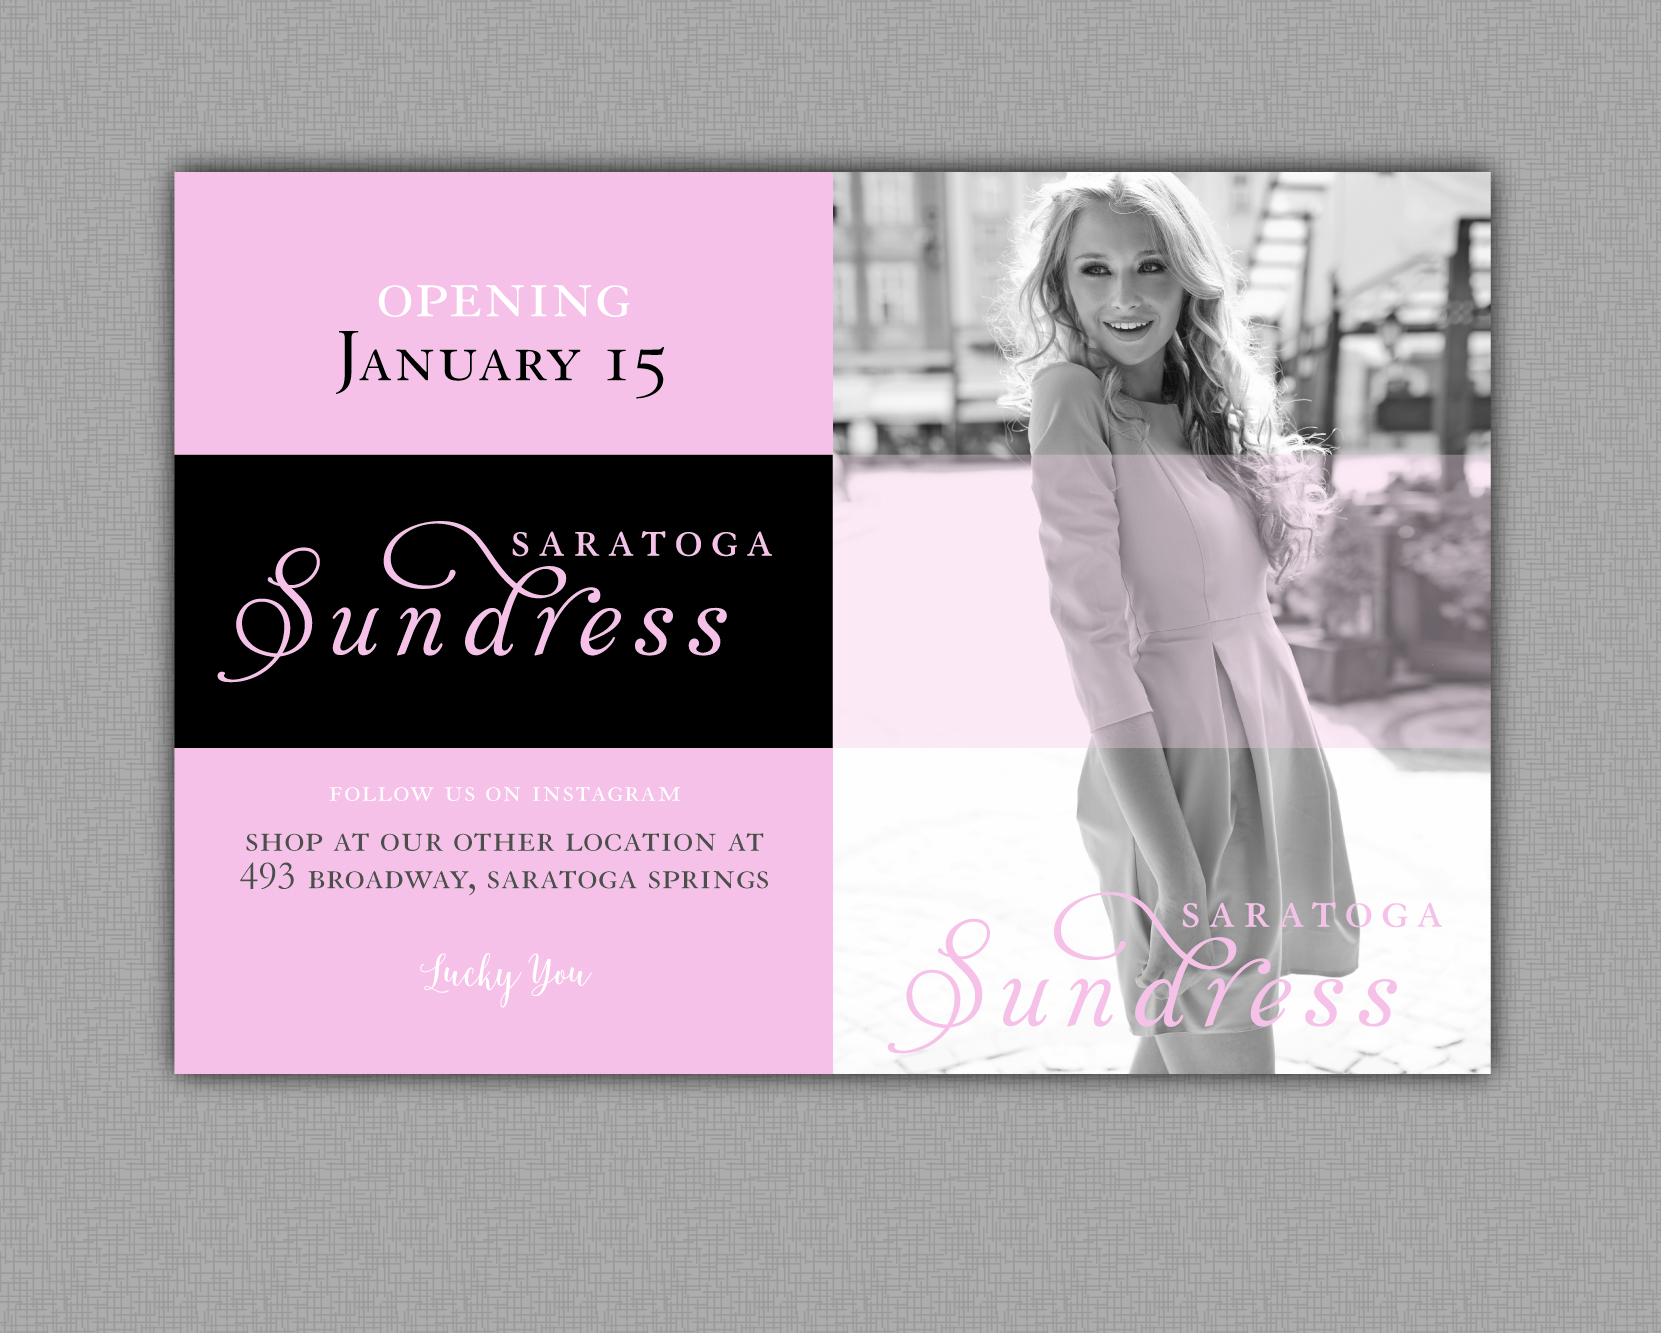 Saratoga Sundress | Mall Sign